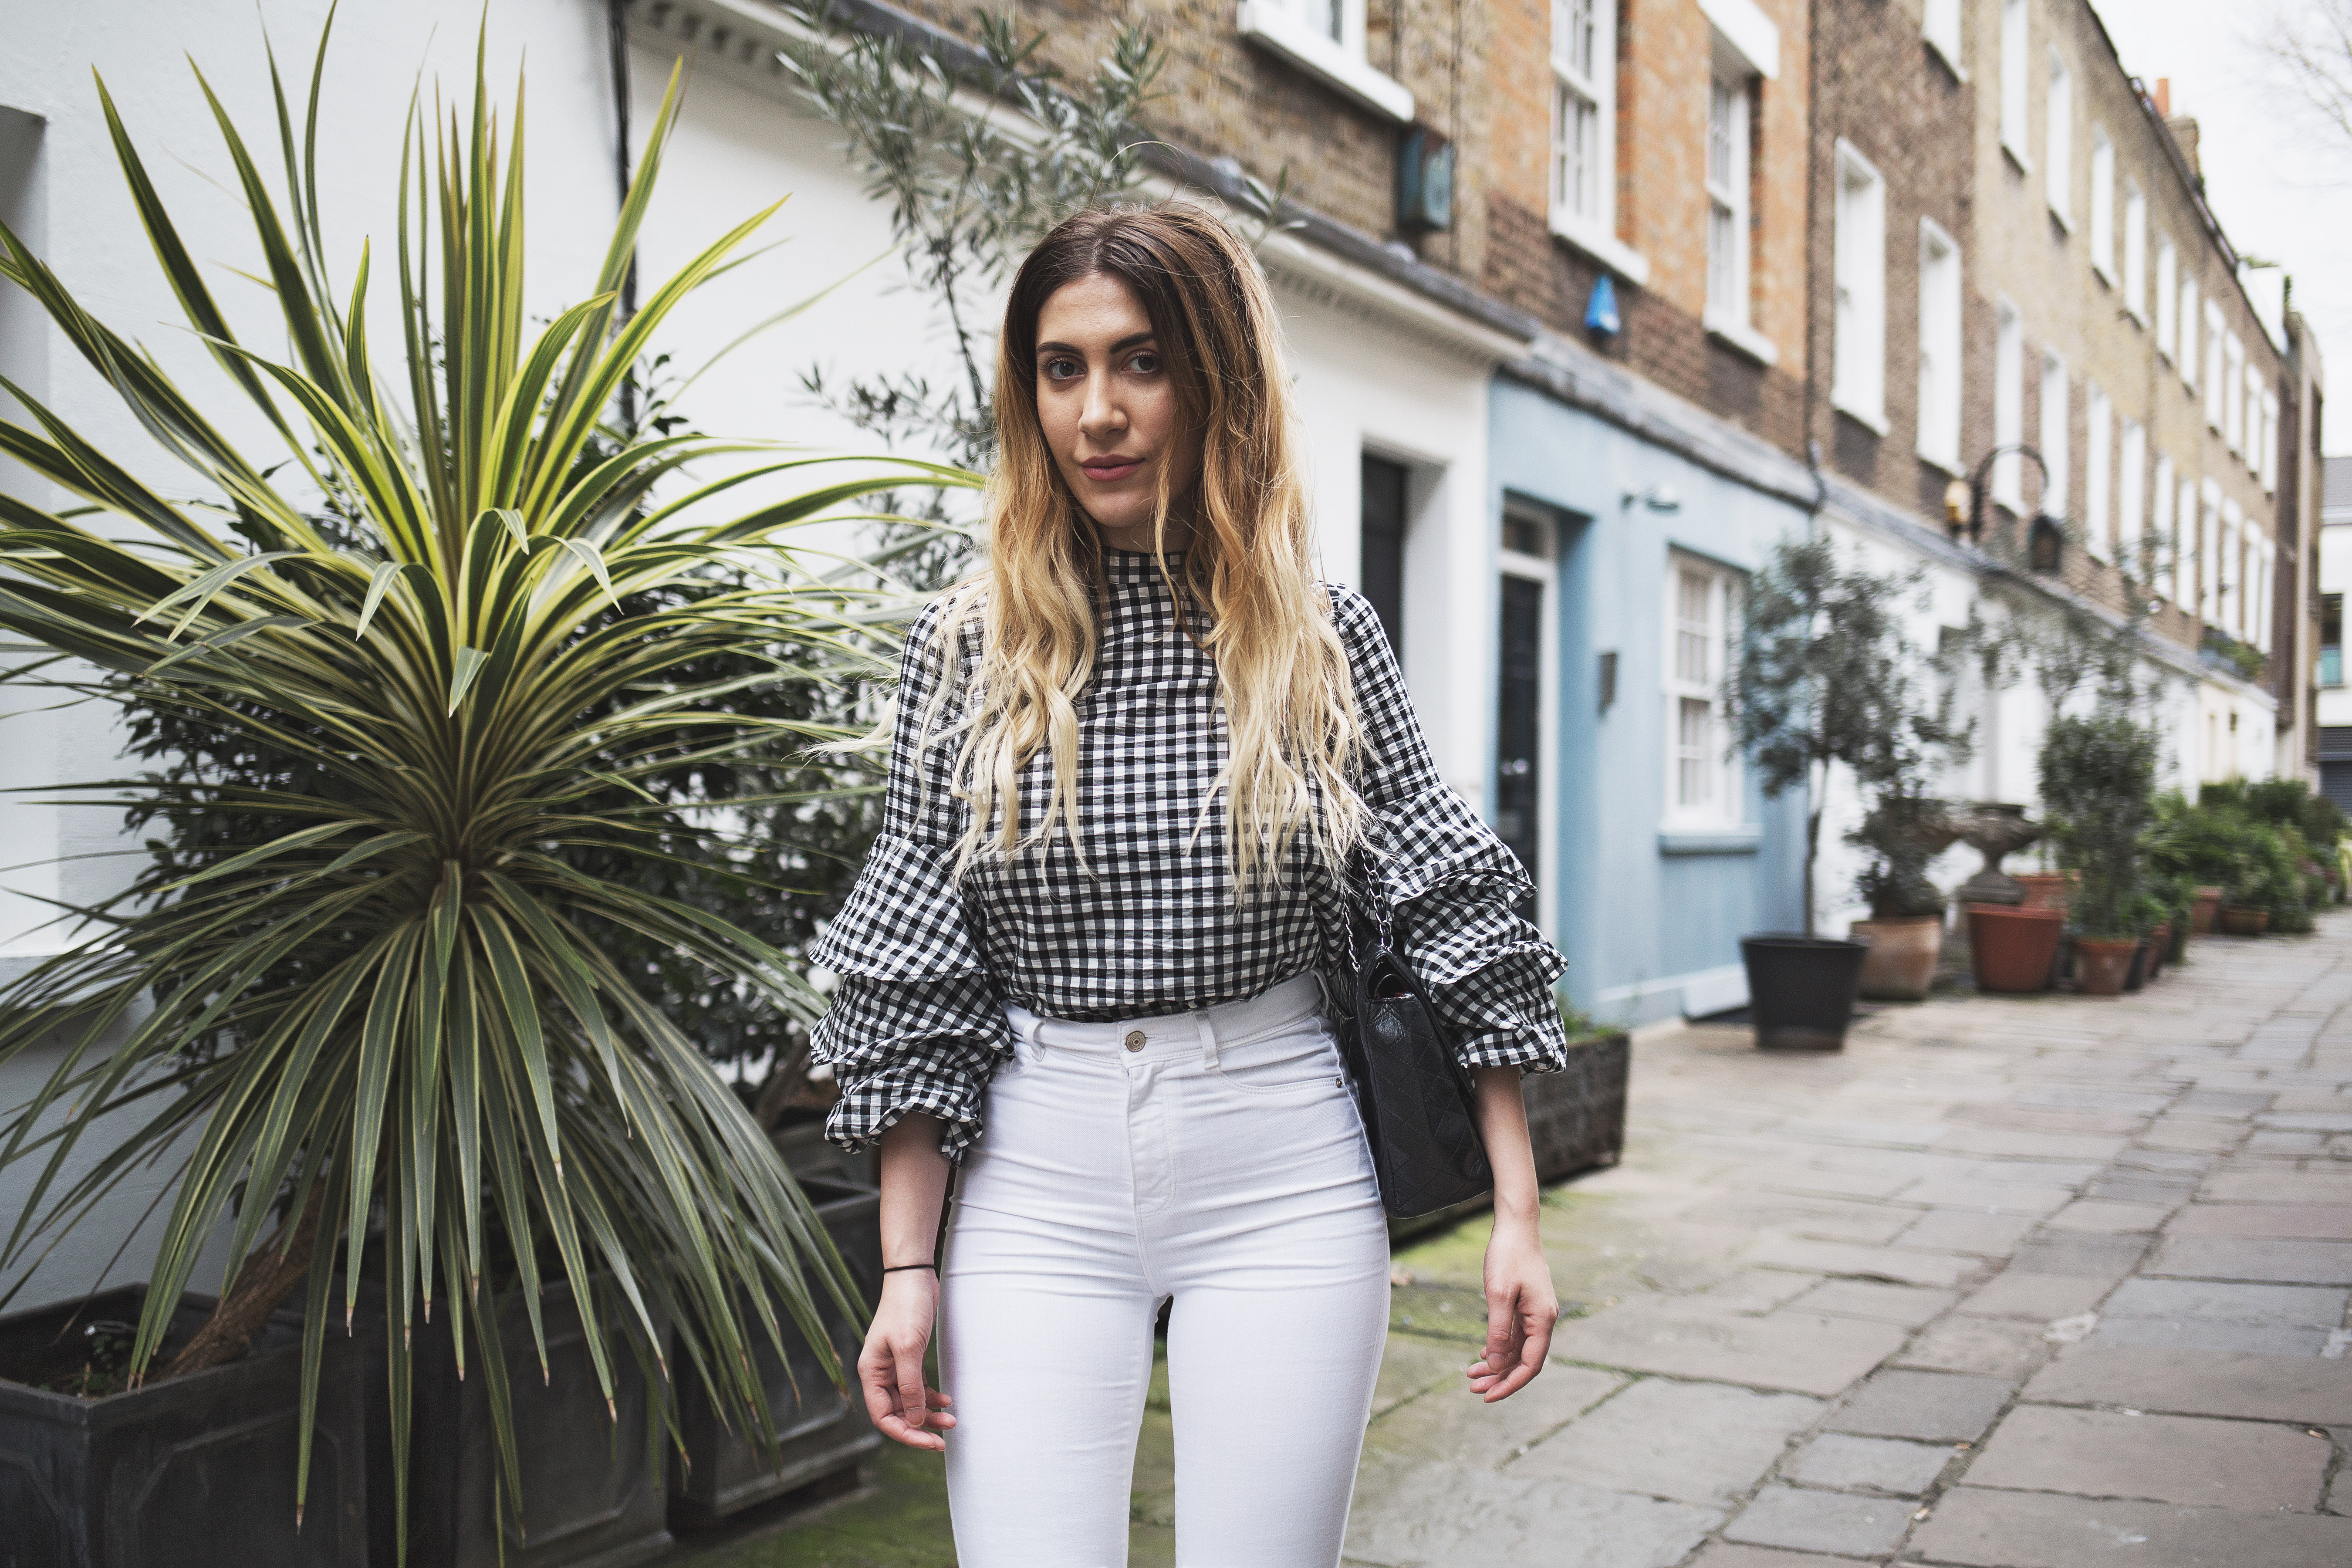 Gingham Top & White Jeans